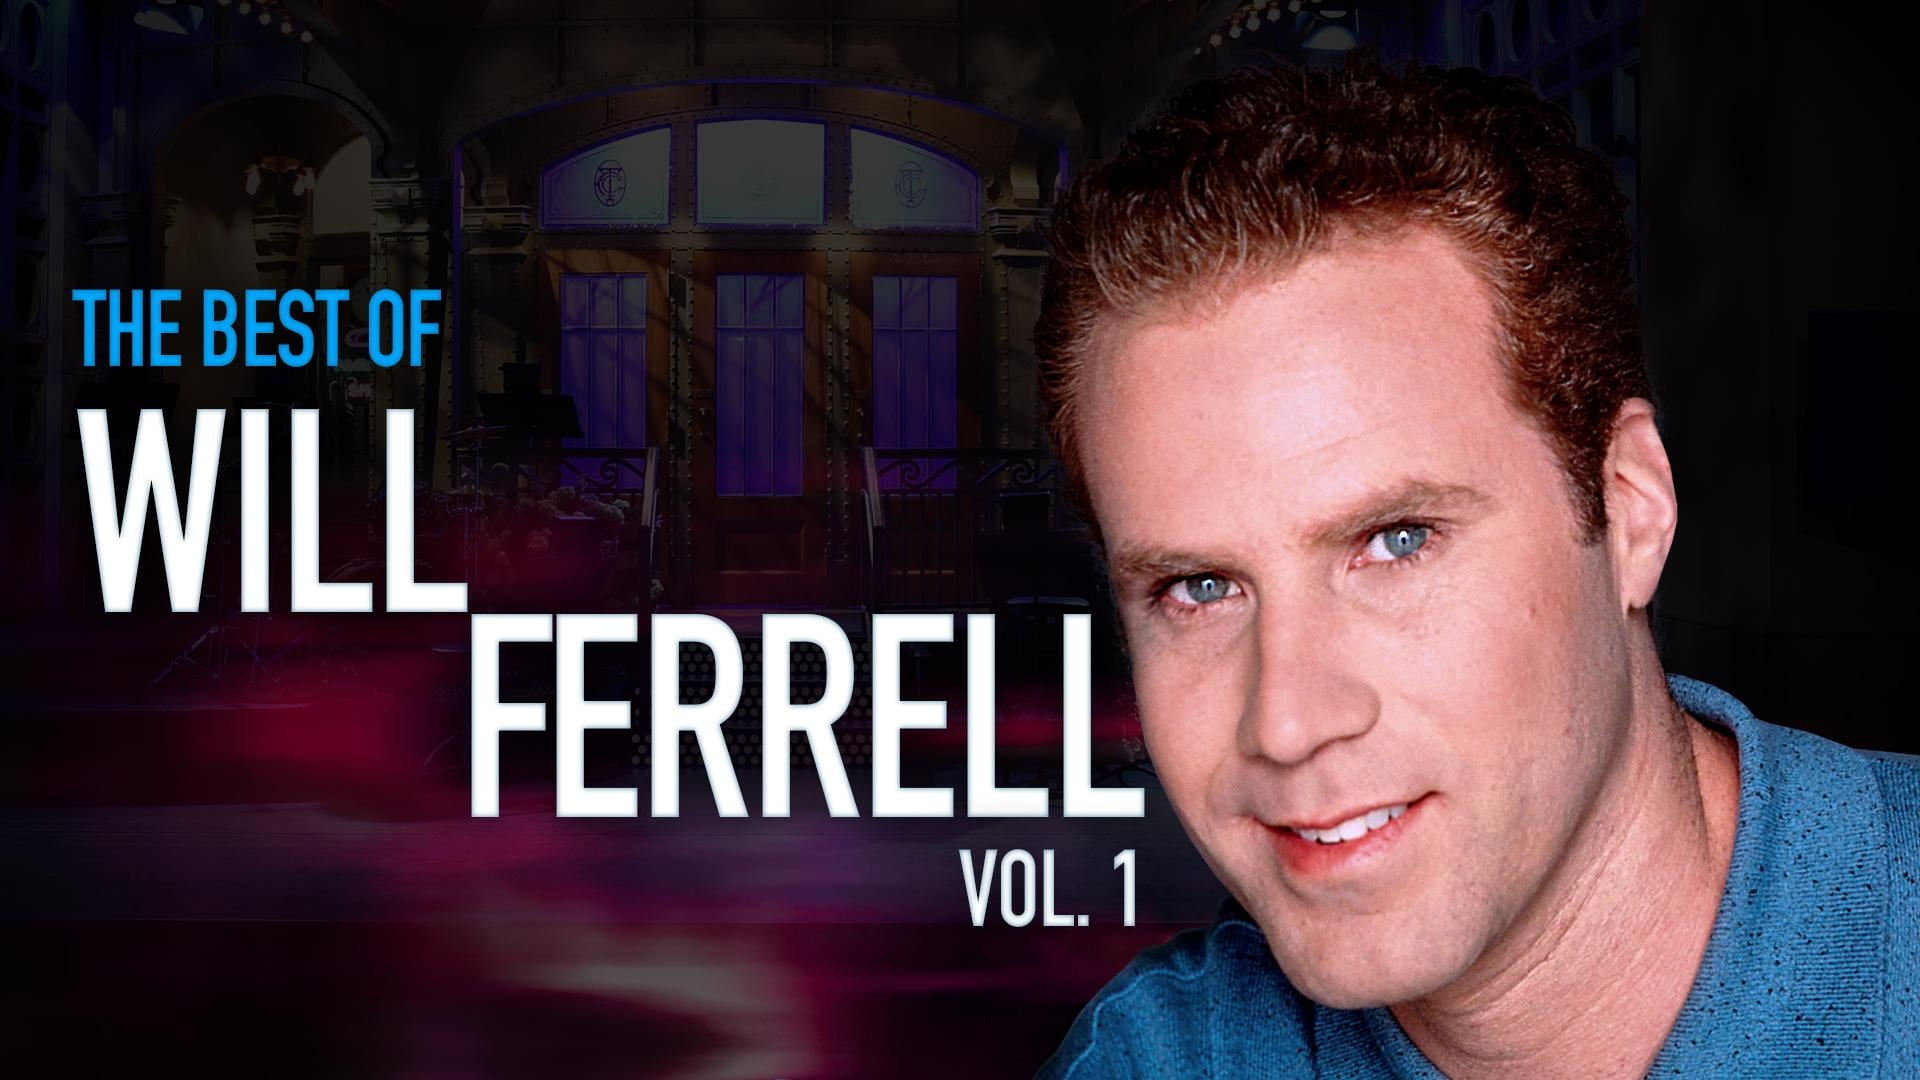 The Best of Will Ferrell Vol. 1